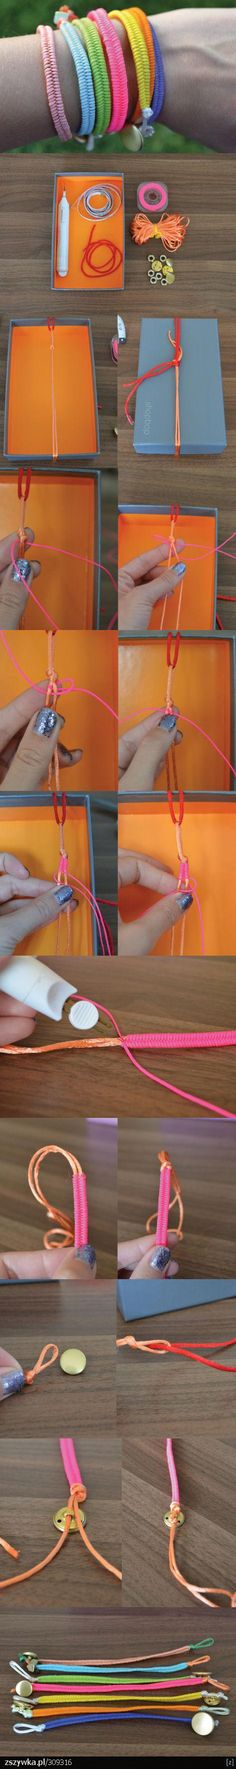 @Shelsea Malin Malin Malin Malin Bartoo You can tie your work to a box or clip board if you don't want to use a loom.